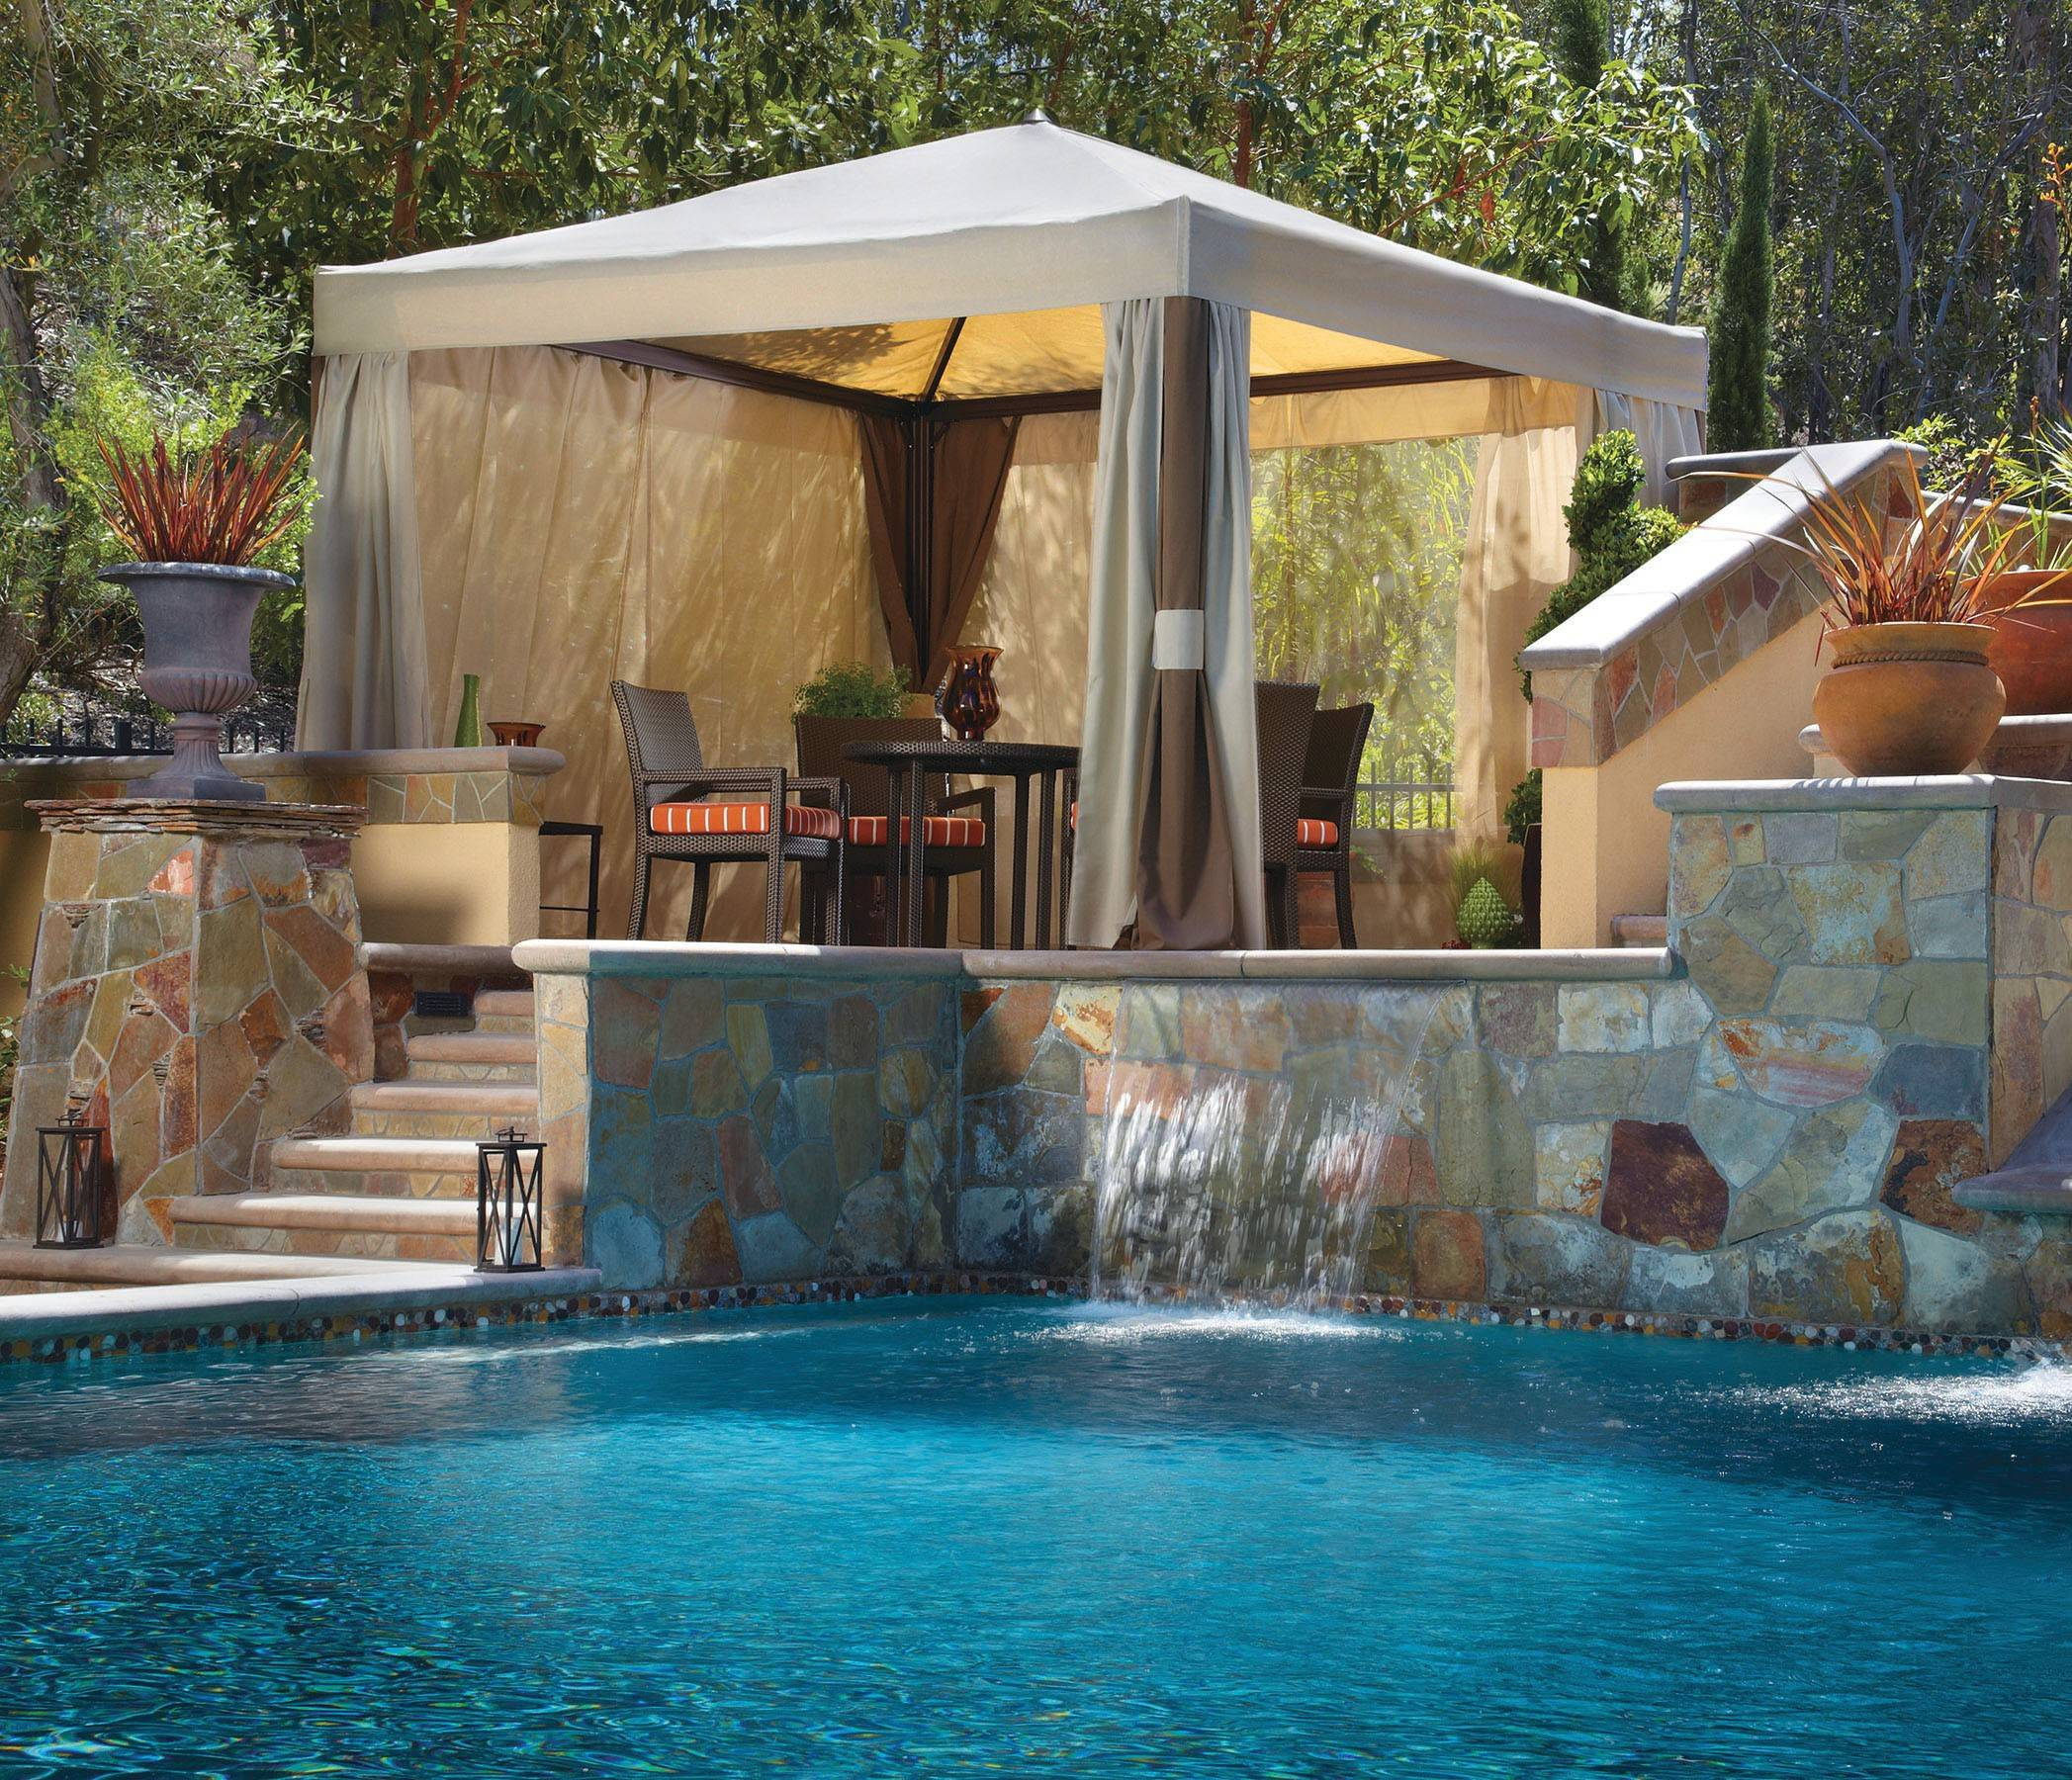 Spacious tented pavilions with tieback draperies provide an instant, private outdoor room.